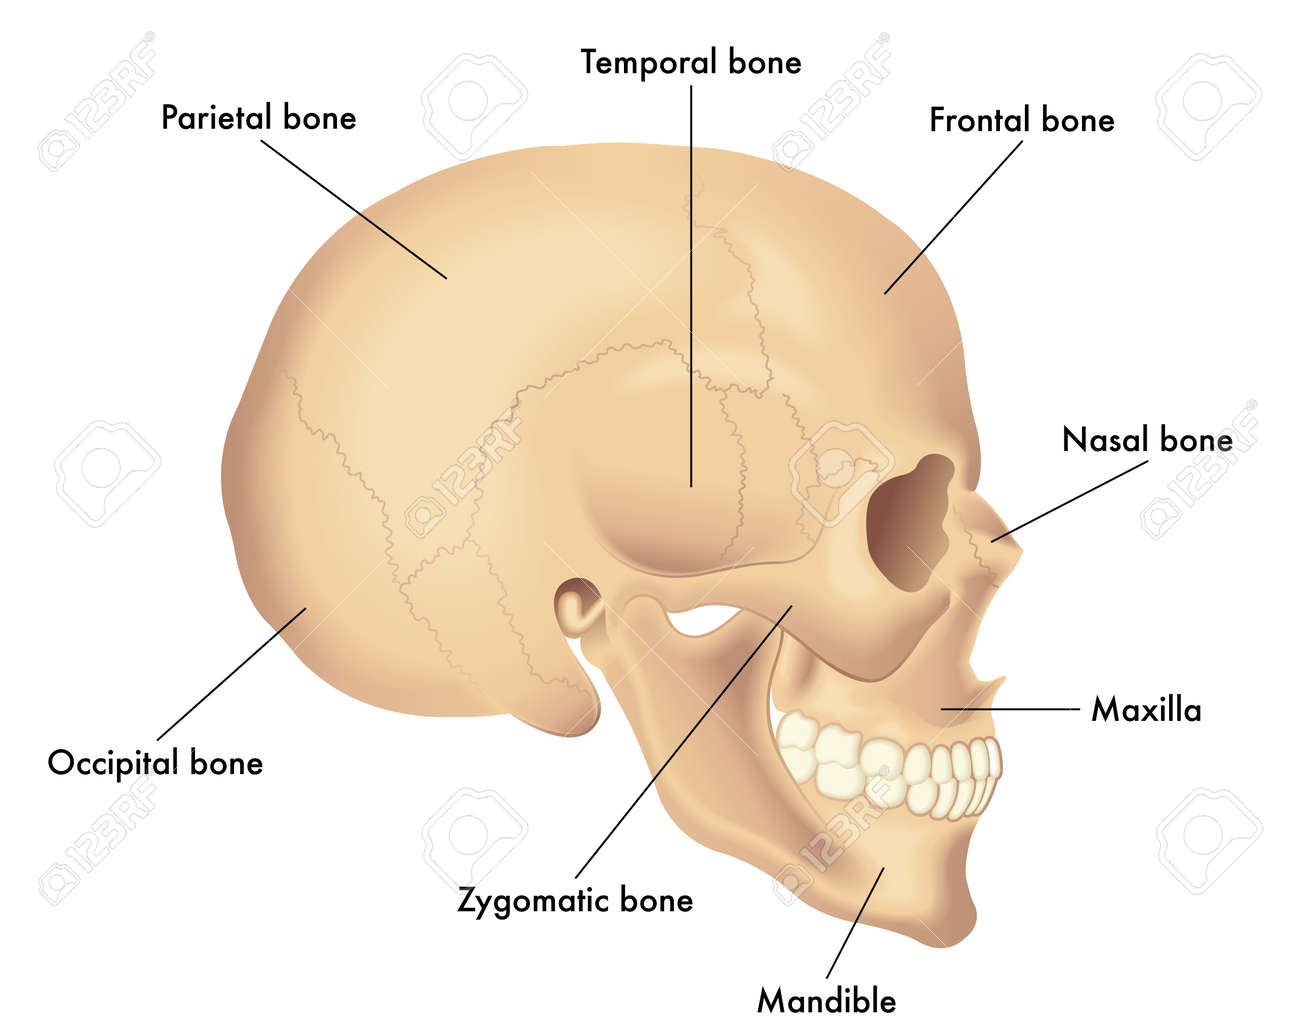 Basic Skull Anatomy Royalty Free Cliparts, Vectors, And Stock ...